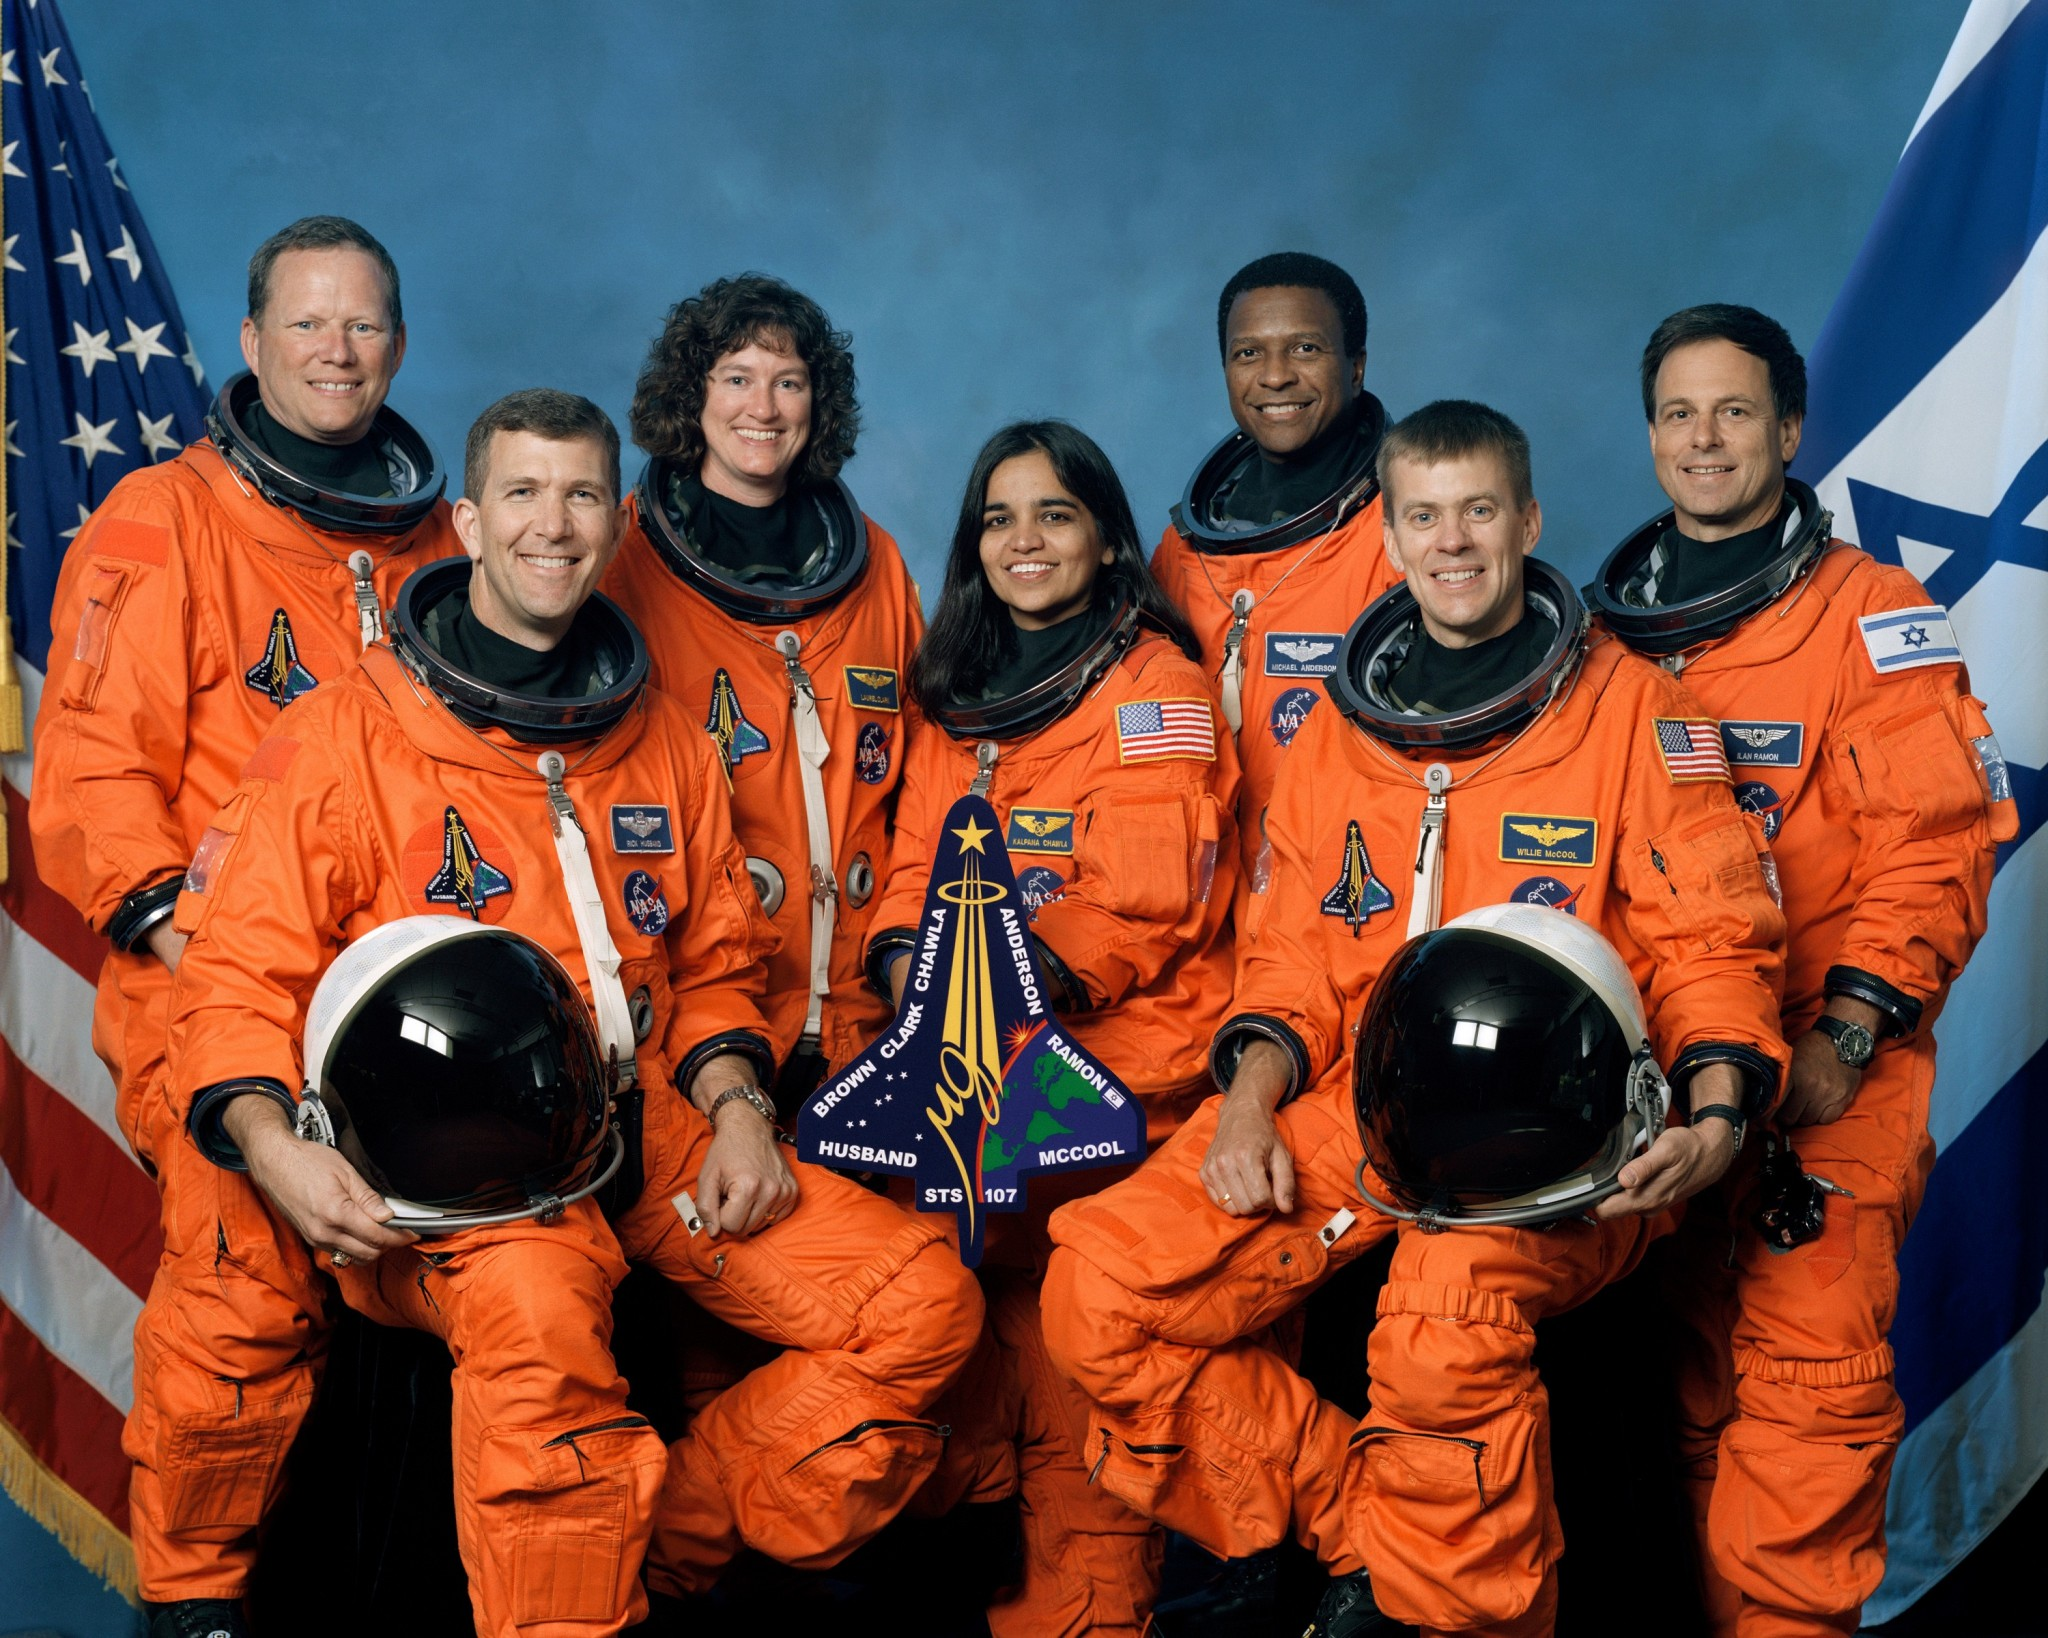 Dr. Kalpana Chawla (center), pictured with her crewmates from the ill-fated Space Shuttle Columbia mission, was a major source of inspiration for Santra. Photo: NASA.